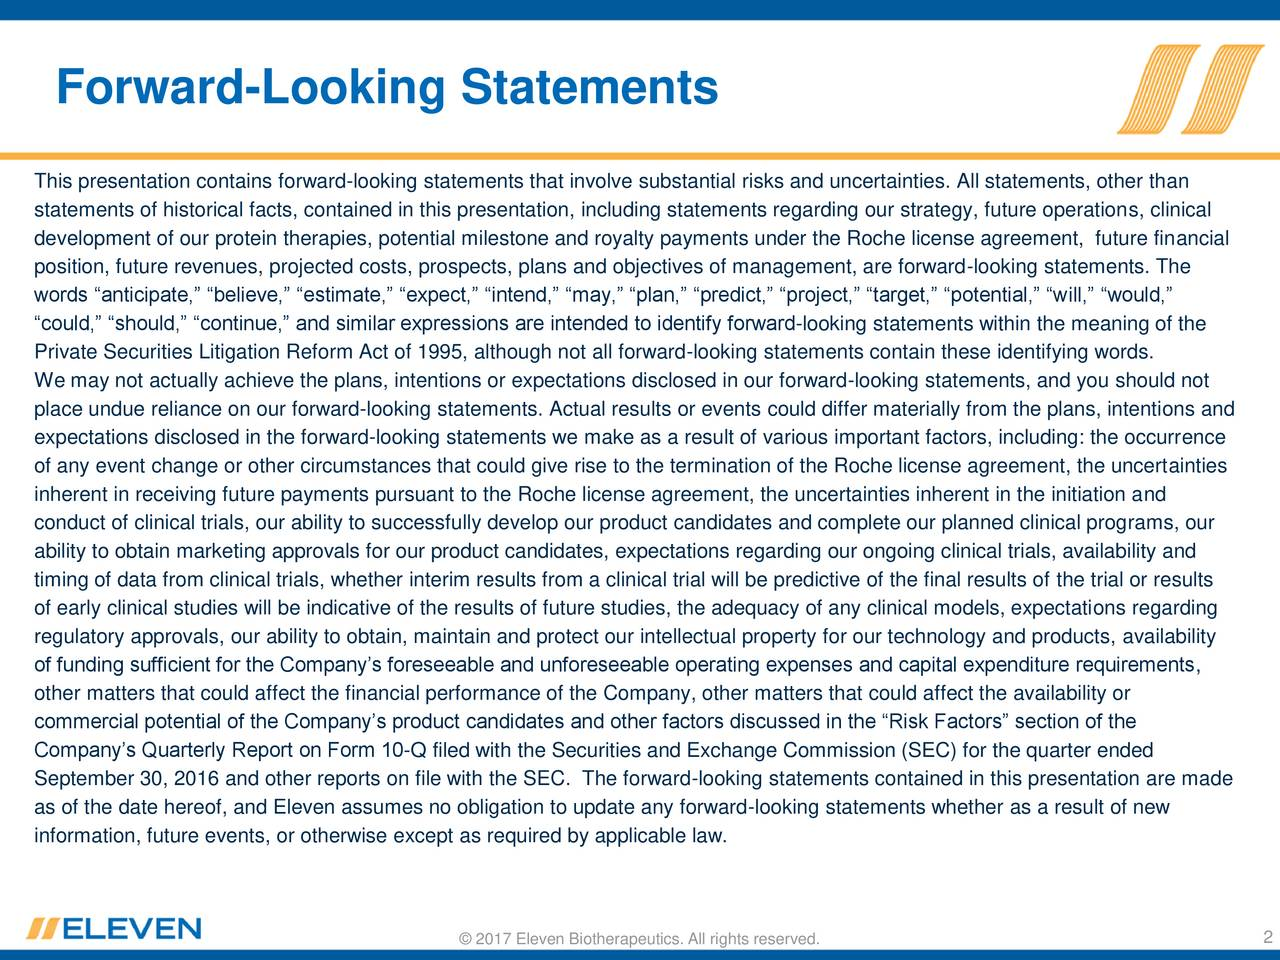 This presentation contains forward-looking statements that involve substantial risks and uncertainties. All statements, other than statements of historical facts, contained in this presentation, including statements regarding our strategy, future operations, clinical development of our protein therapies, potential milestone and royalty payments under the Roche license agreement, future financial position, future revenues, projected costs, prospects, plans and objectives of management, are forward-looking statements. The words anticipate, believe, estimate, expect, intend, may, plan, predict, project, target, potential, will, would, could, should, continue, and similar expressions are intended to identify forward-looking statements within the meaning of the Private Securities Litigation Reform Act of 1995, although not all forward-looking statements contain these identifying words. We may not actually achieve the plans, intentions or expectations disclosed in our forward-looking statements, and you should not place undue reliance on our forward-looking statements. Actual results or events could differ materially from the plans, intentions and expectations disclosed in the forward-looking statements we make as a result of various important factors, including: the occurrence of any event change or other circumstances that could give rise to the termination of the Roche license agreement, the uncertainties inherent in receiving future payments pursuant to the Roche license agreement, the uncertainties inherent in the initiation and conduct of clinical trials, our ability to successfully develop our product candidates and complete our planned clinical programs, our ability to obtain marketing approvals for our product candidates, expectations regarding our ongoing clinical trials, availability and timing of data from clinical trials, whether interim results from a clinical trial will be predictive of the final results of the trial or results of early clinical studies will be indicative of the results of future studies, the adequacy of any clinical models, expectations regarding regulatory approvals, our ability to obtain, maintain and protect our intellectual property for our technology and products, availability of funding sufficient for the Companys foreseeable and unforeseeable operating expenses and capital expenditure requirements, other matters that could affect the financial performance of the Company, other matters that could affect the availability or commercial potential of the Companys product candidates and other factors discussed in the Risk Factors section of the Companys Quarterly Report on Form 10-Q filed with the Securities and Exchange Commission (SEC) for the quarter ended September 30, 2016 and other reports on file with the SEC. The forward-looking statements contained in this presentation are made as of the date hereof, and Eleven assumes no obligation to update any forward-looking statements whether as a result of new information, future events, or otherwise except as required by applicable law. 2017 Eleven Biotherapeutics. All rights reserved. 2